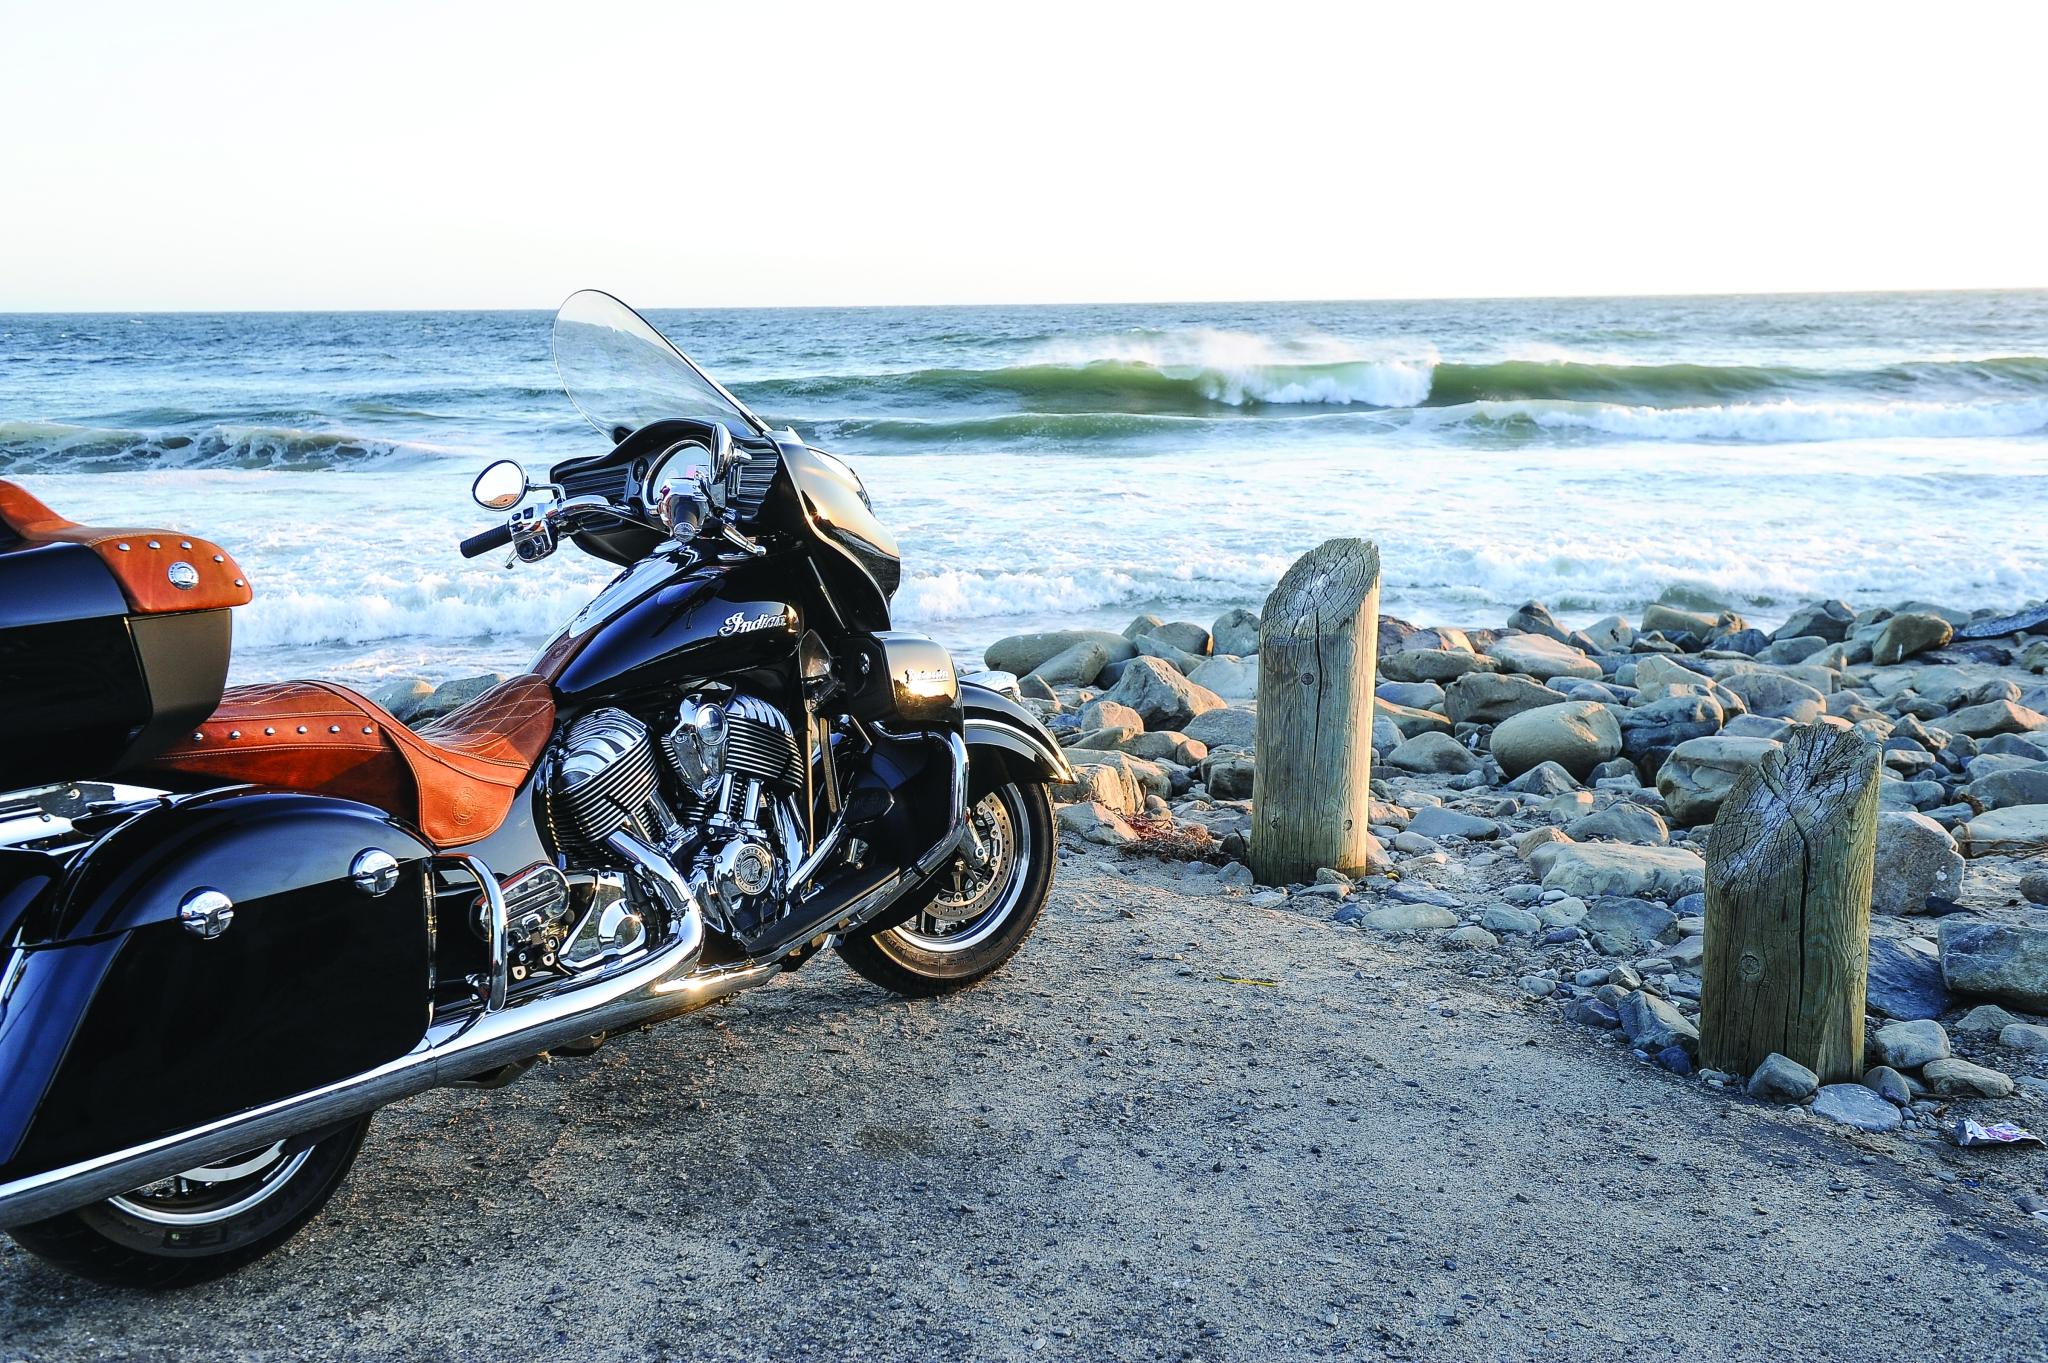 2015 Indian Roadmaster High-Res Picture Xxx - Autoevolution-7645